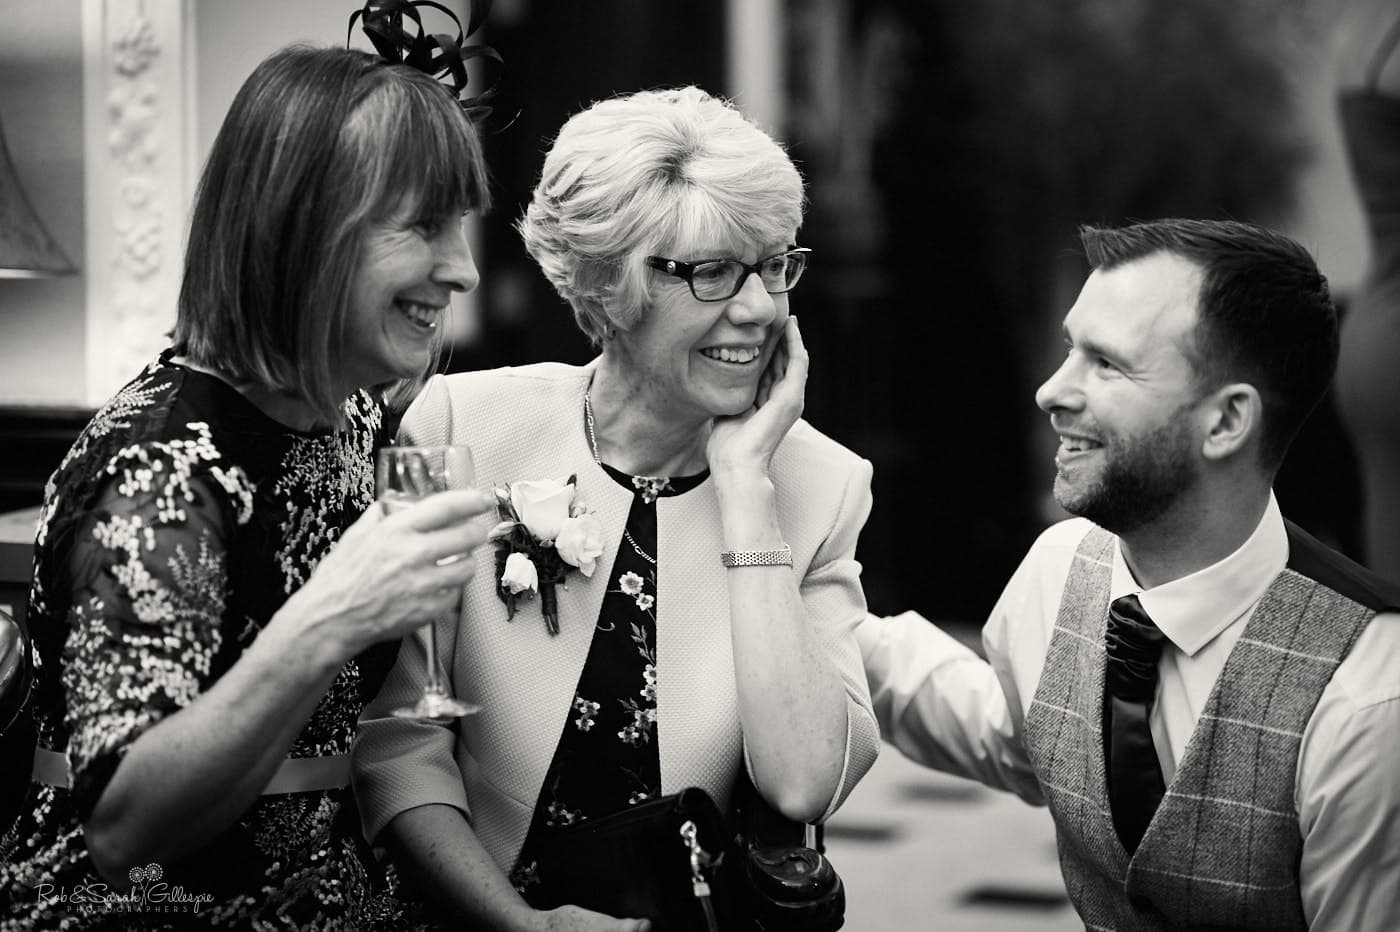 Wedding guests chat at reception party